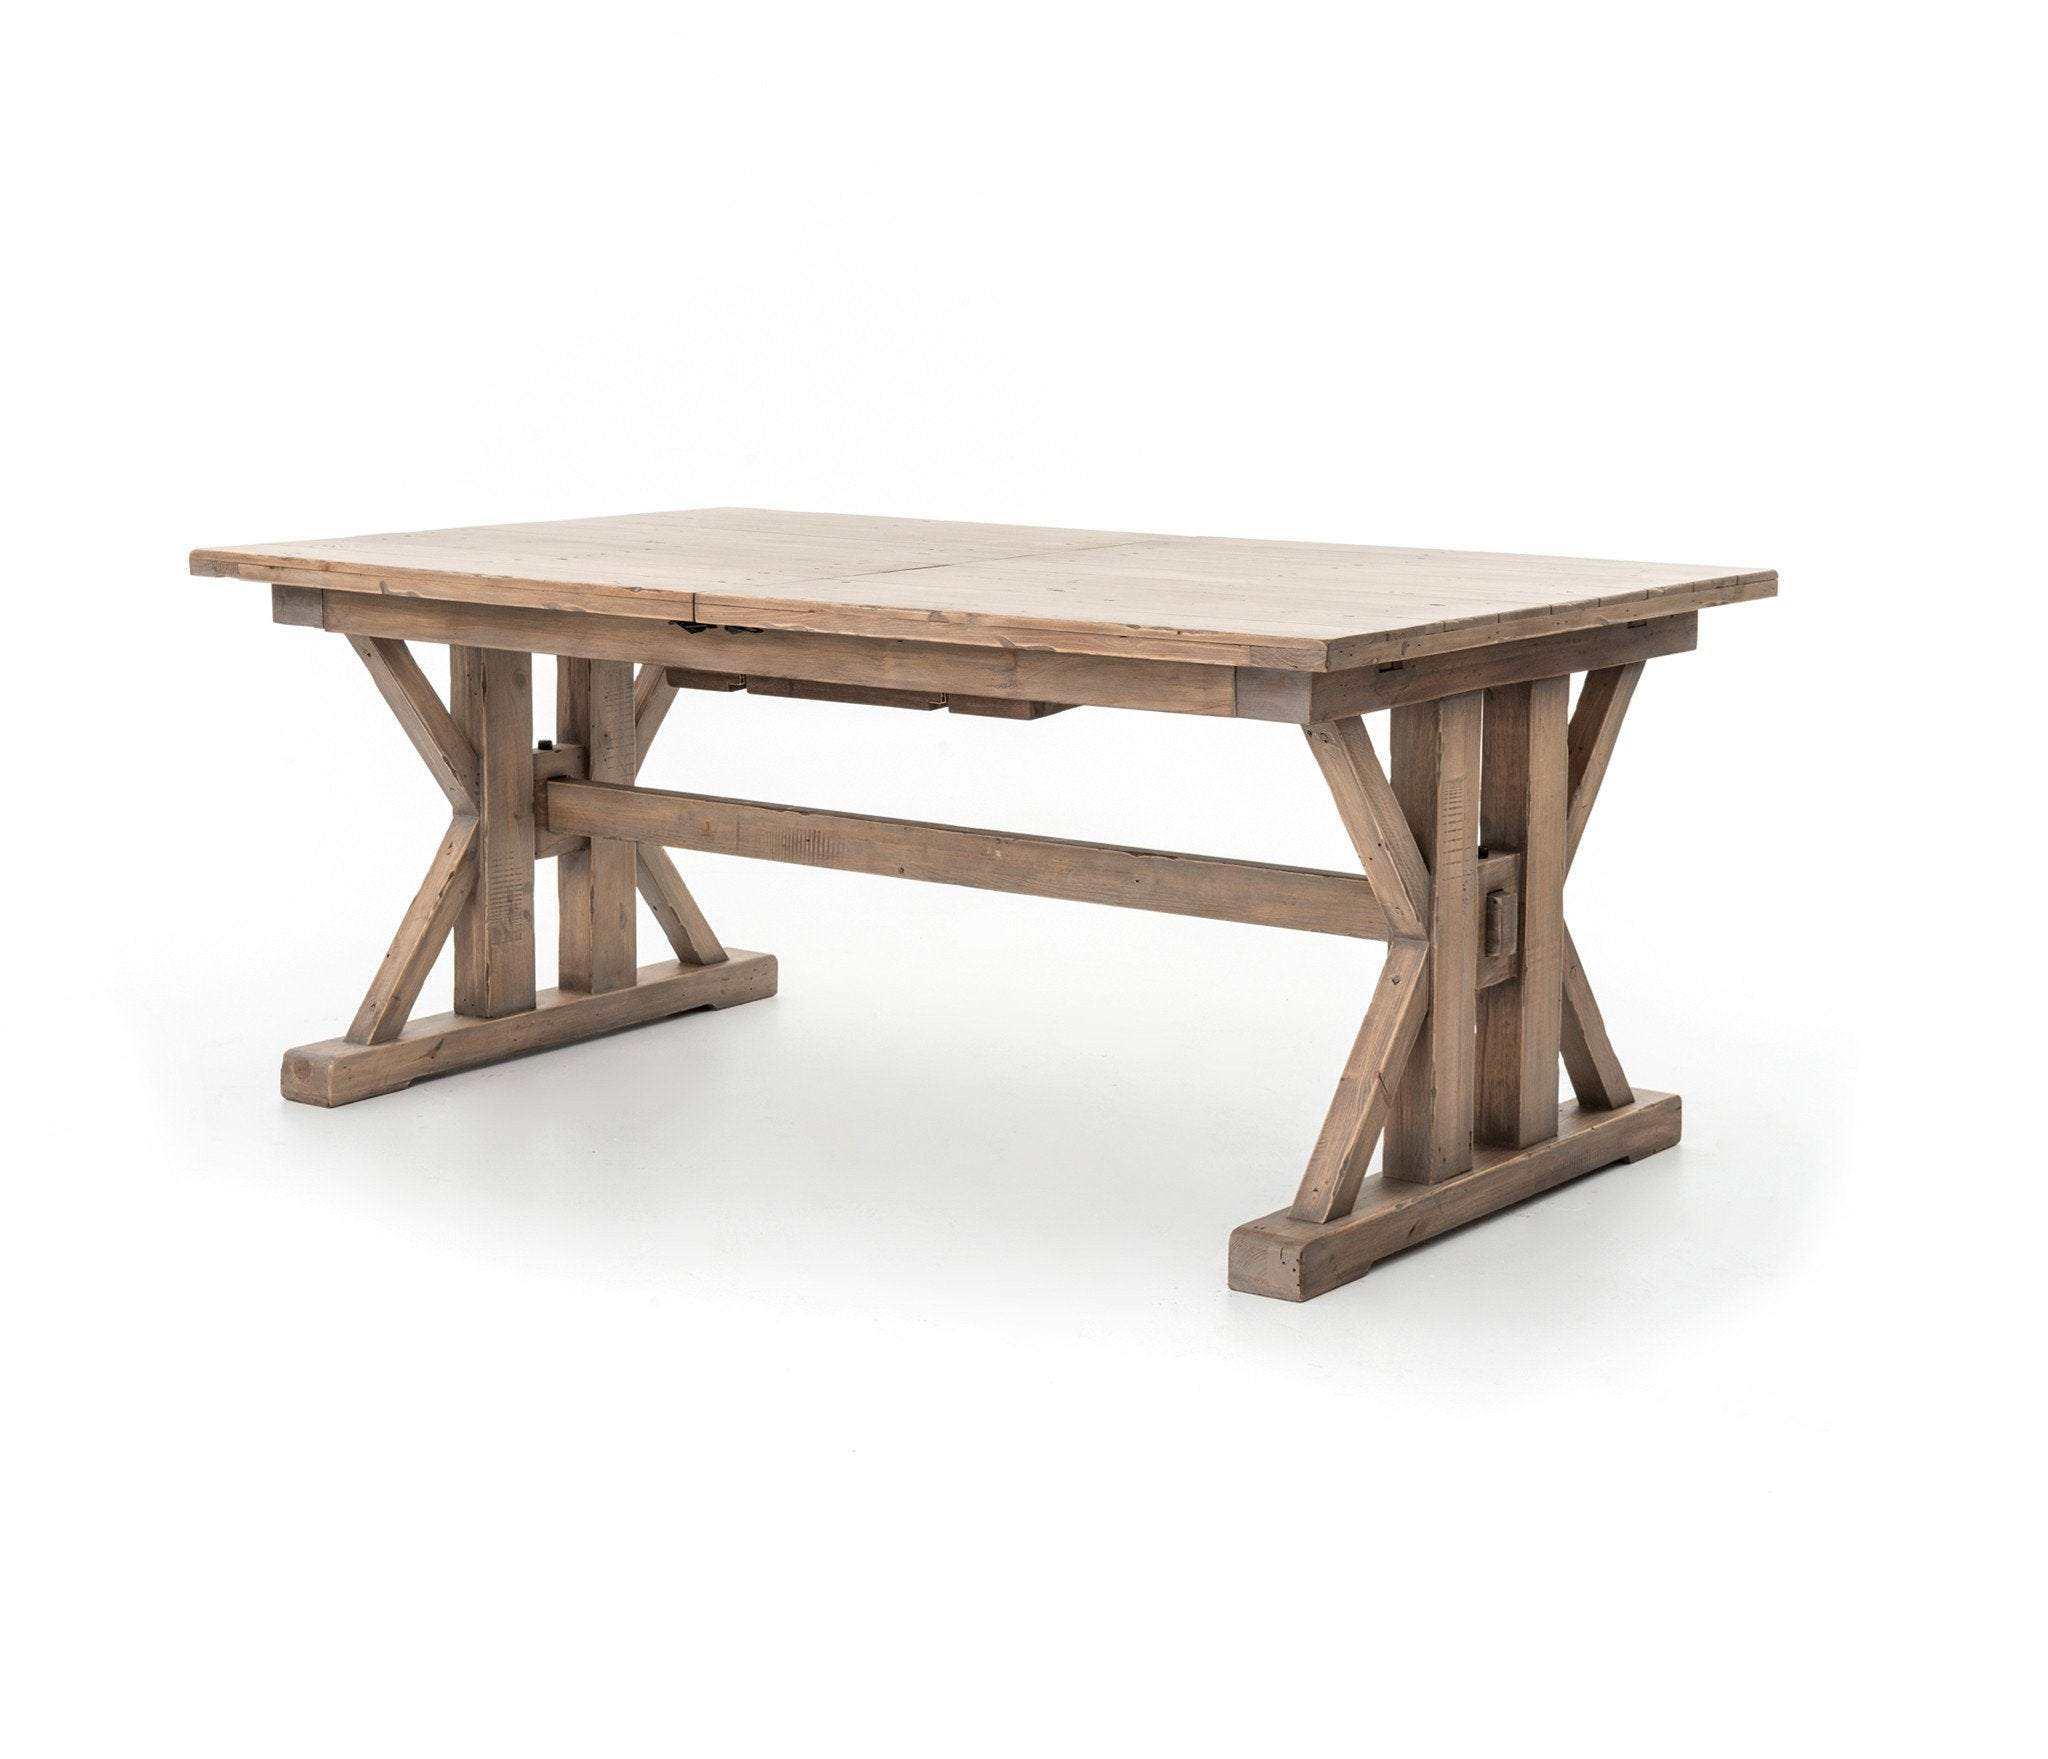 Treasured Farmhouse Dining Table - Rustic Edge